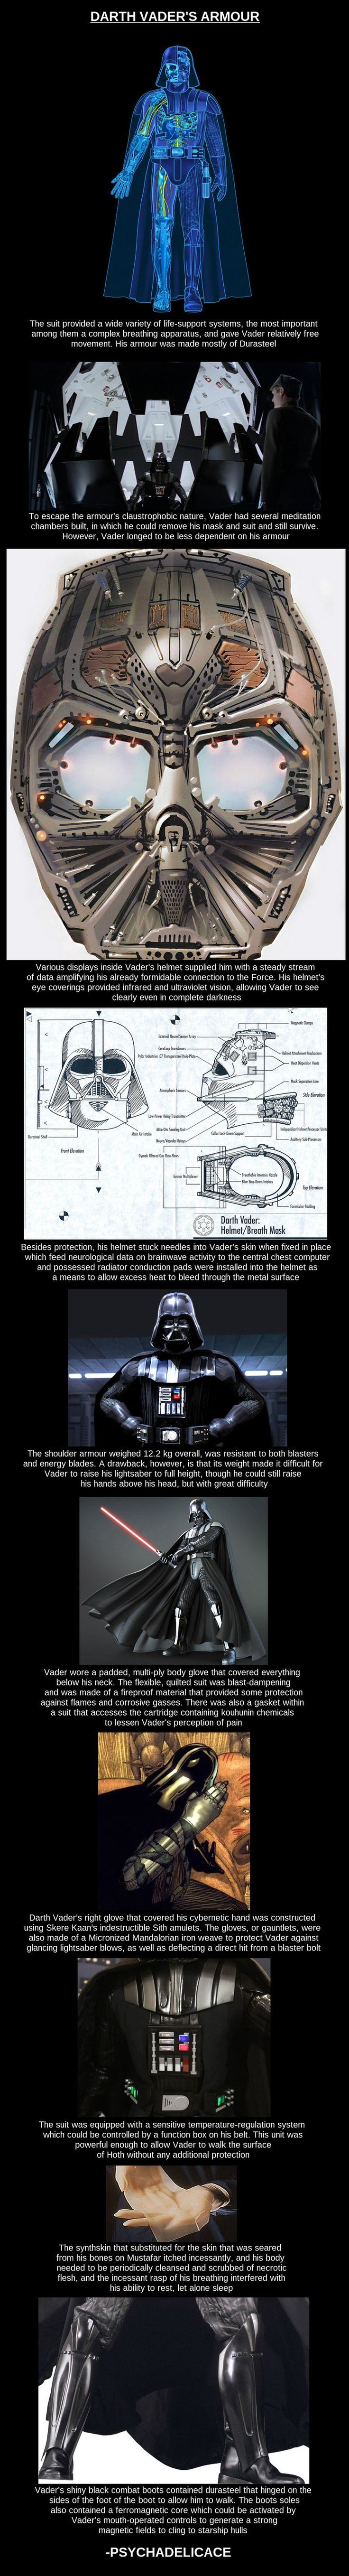 Vader's armour.